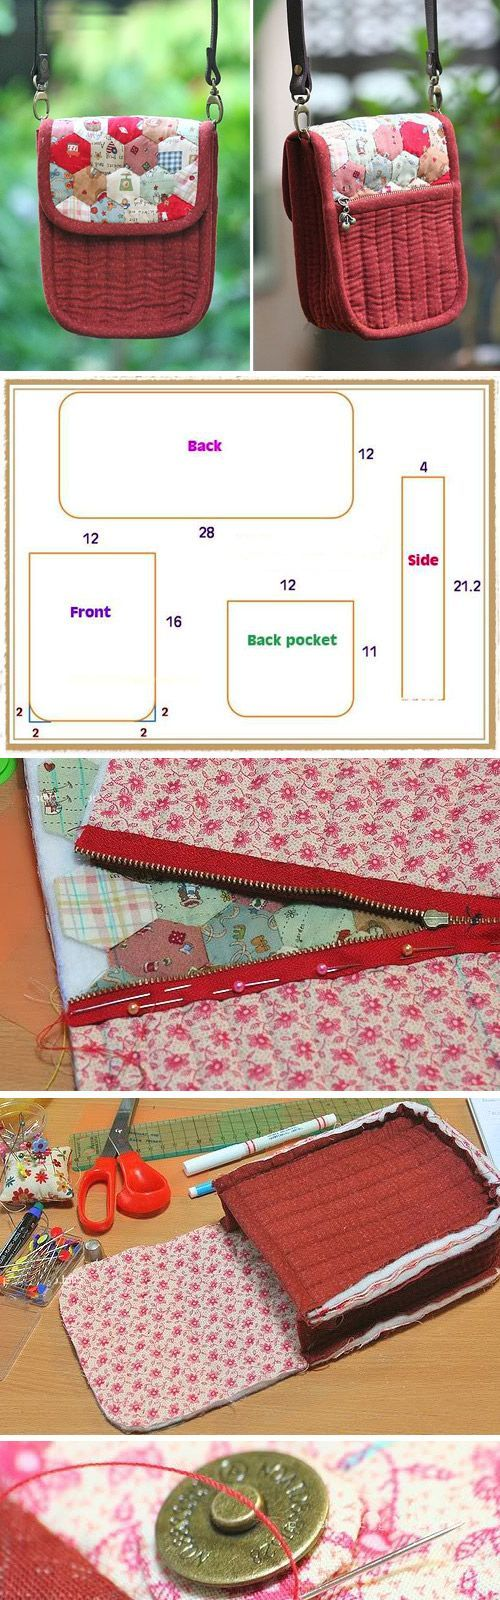 DIY Une pochette pour mettre tout le nécessaire. (Patchwork and Quilted Purse zipper DIY. Tutorial with Photos. http://www.handmadiya.com/2015/11/patchwork-and-quilted-purse.html) (http://www.handmadiya.com/2015/11/patchwork-and-quilted-purse.html)